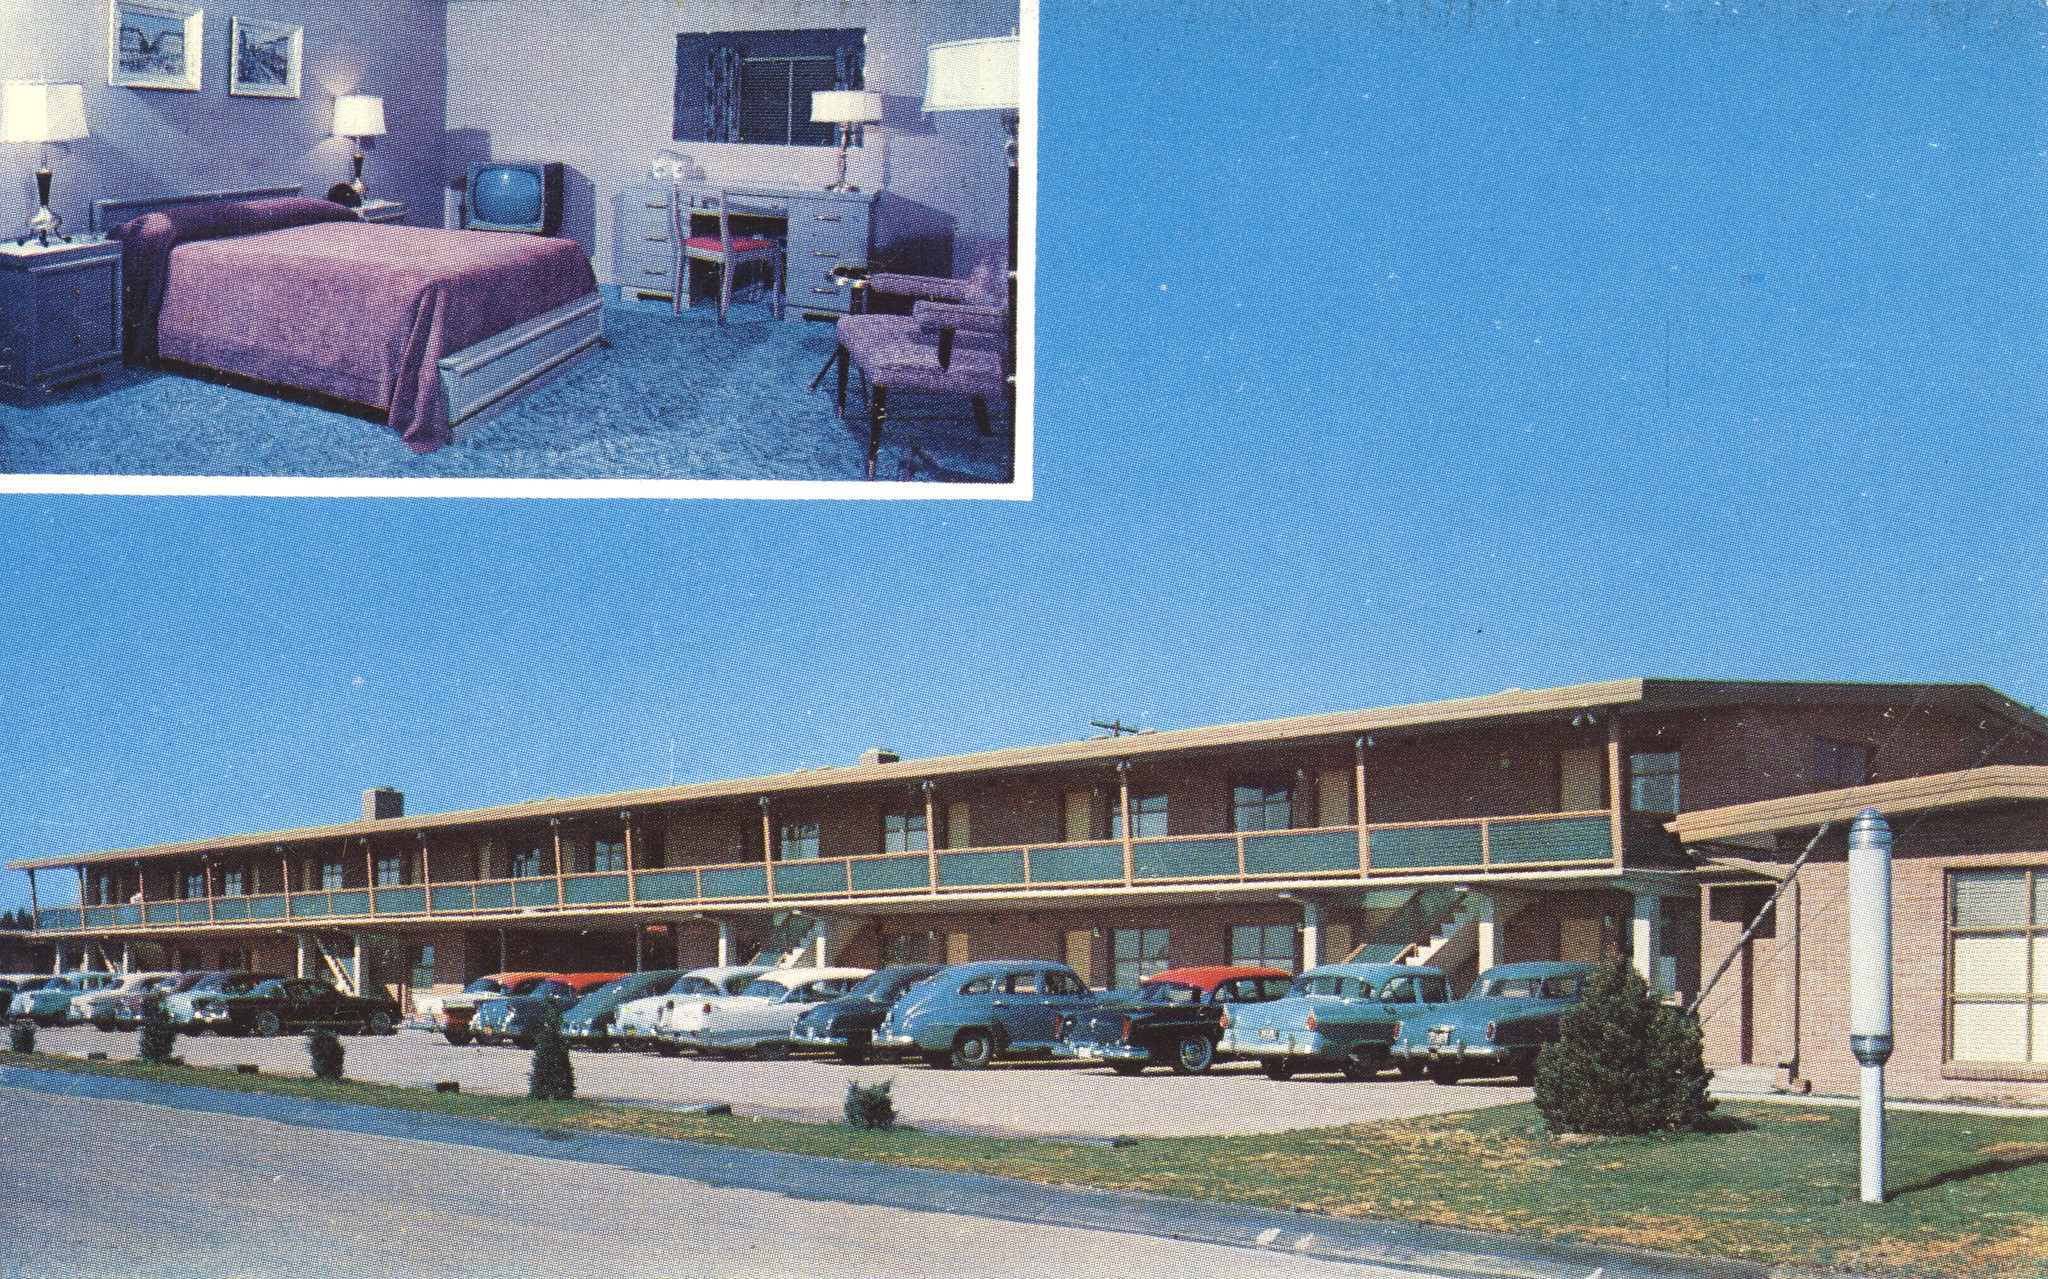 Park Hill Motor Hotel - Denver, Colorado